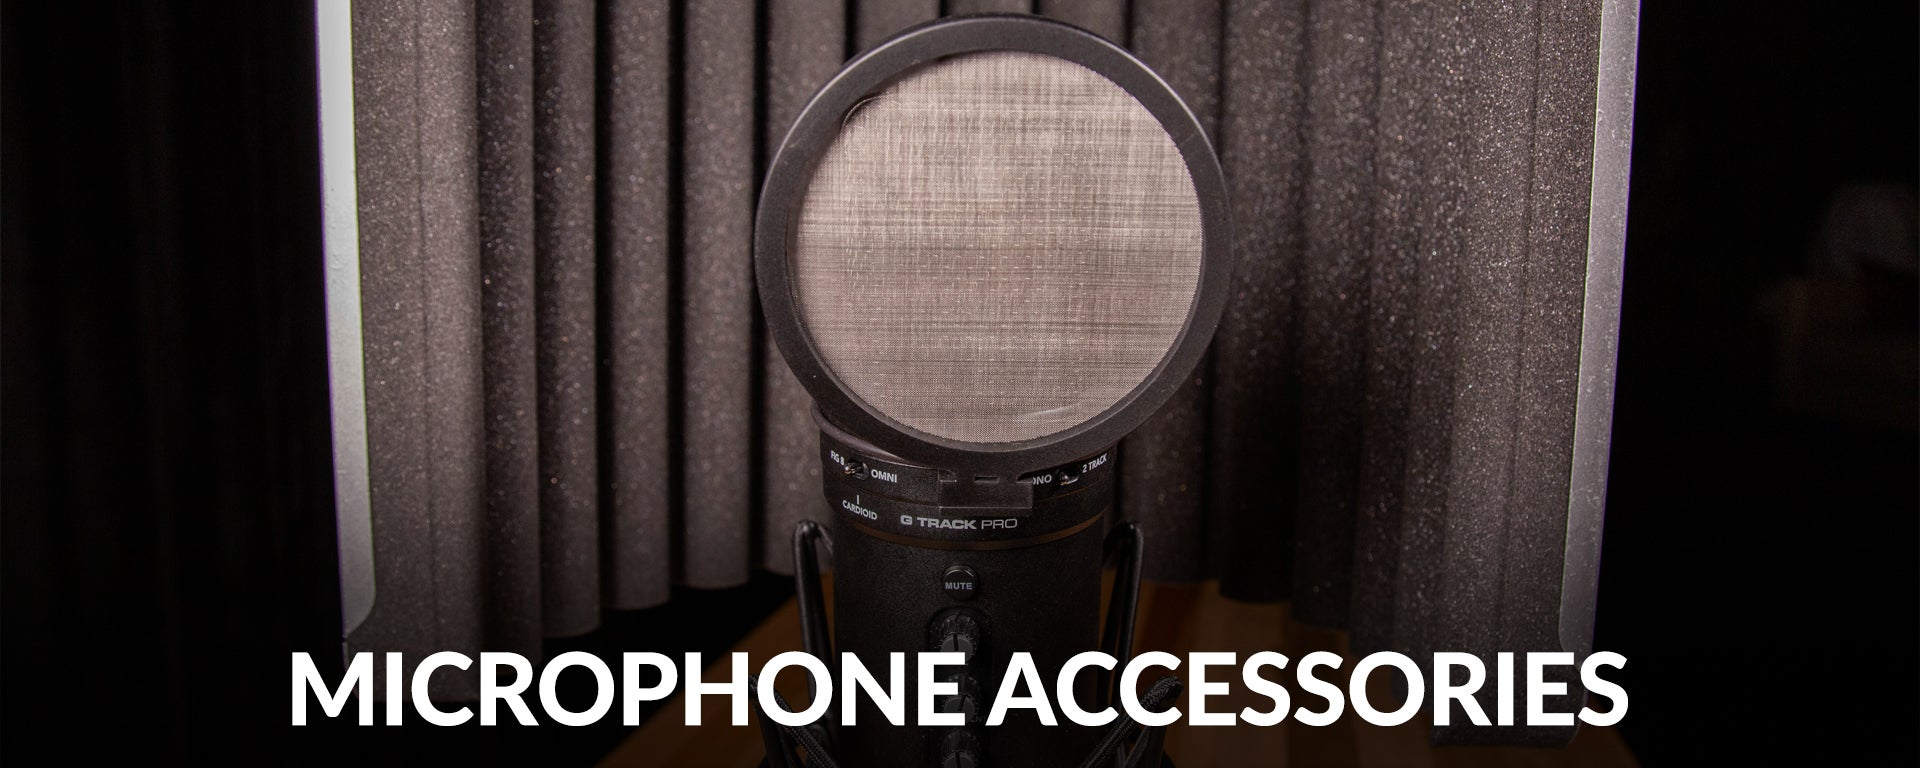 Microphone Accessories at SamAsh.com